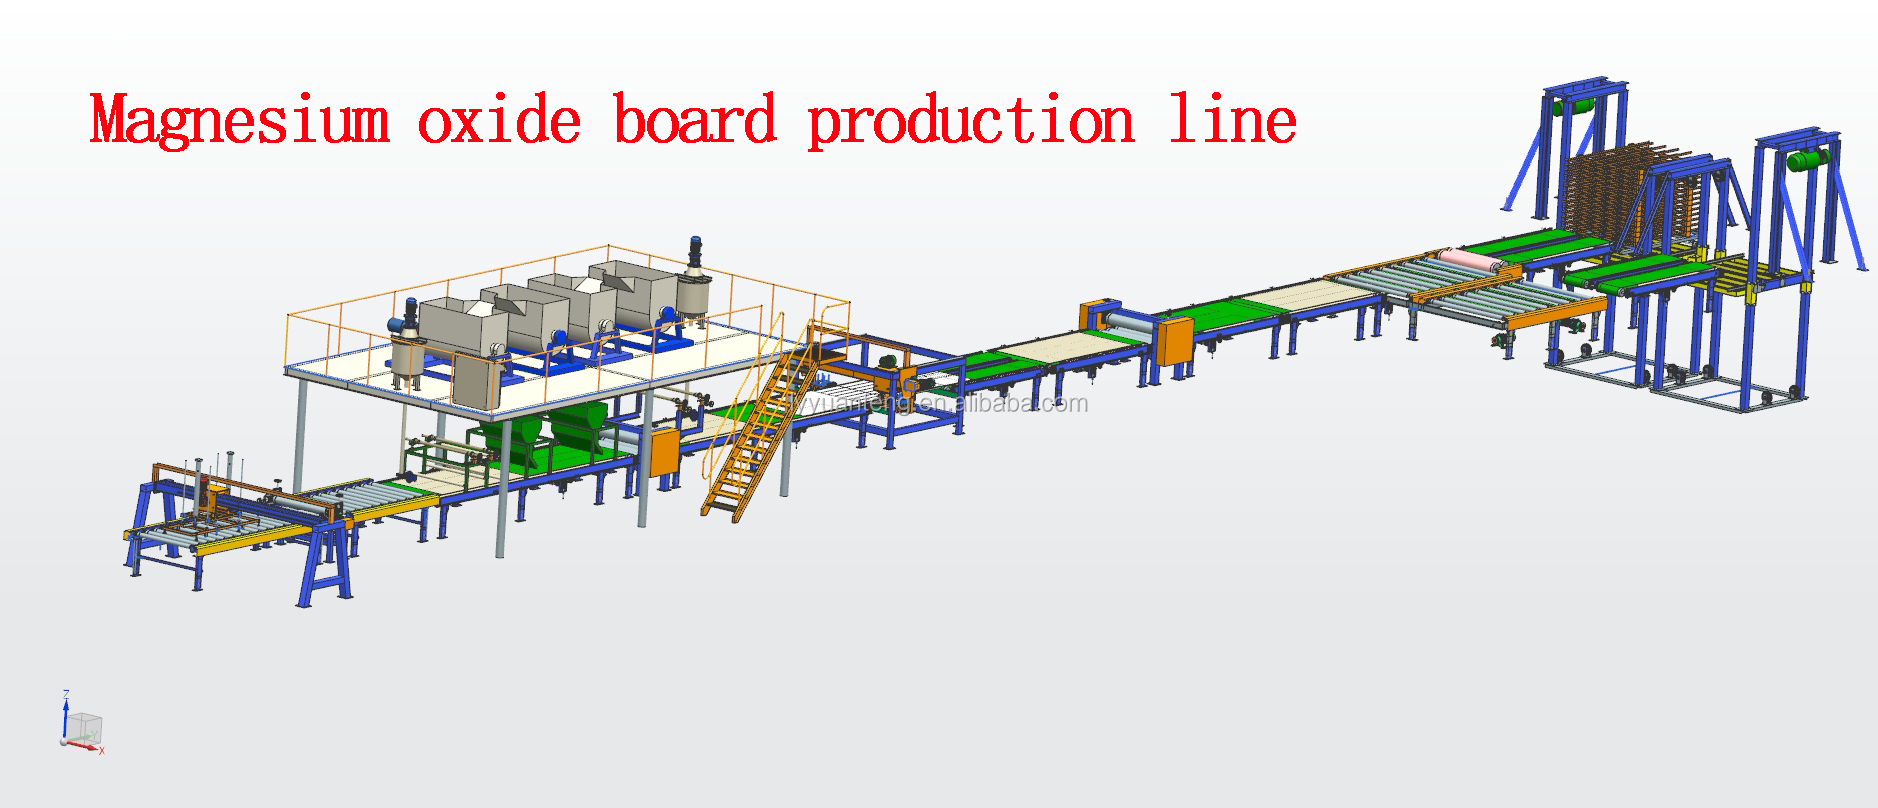 Glass magnesium board production line is made in China with famous brand